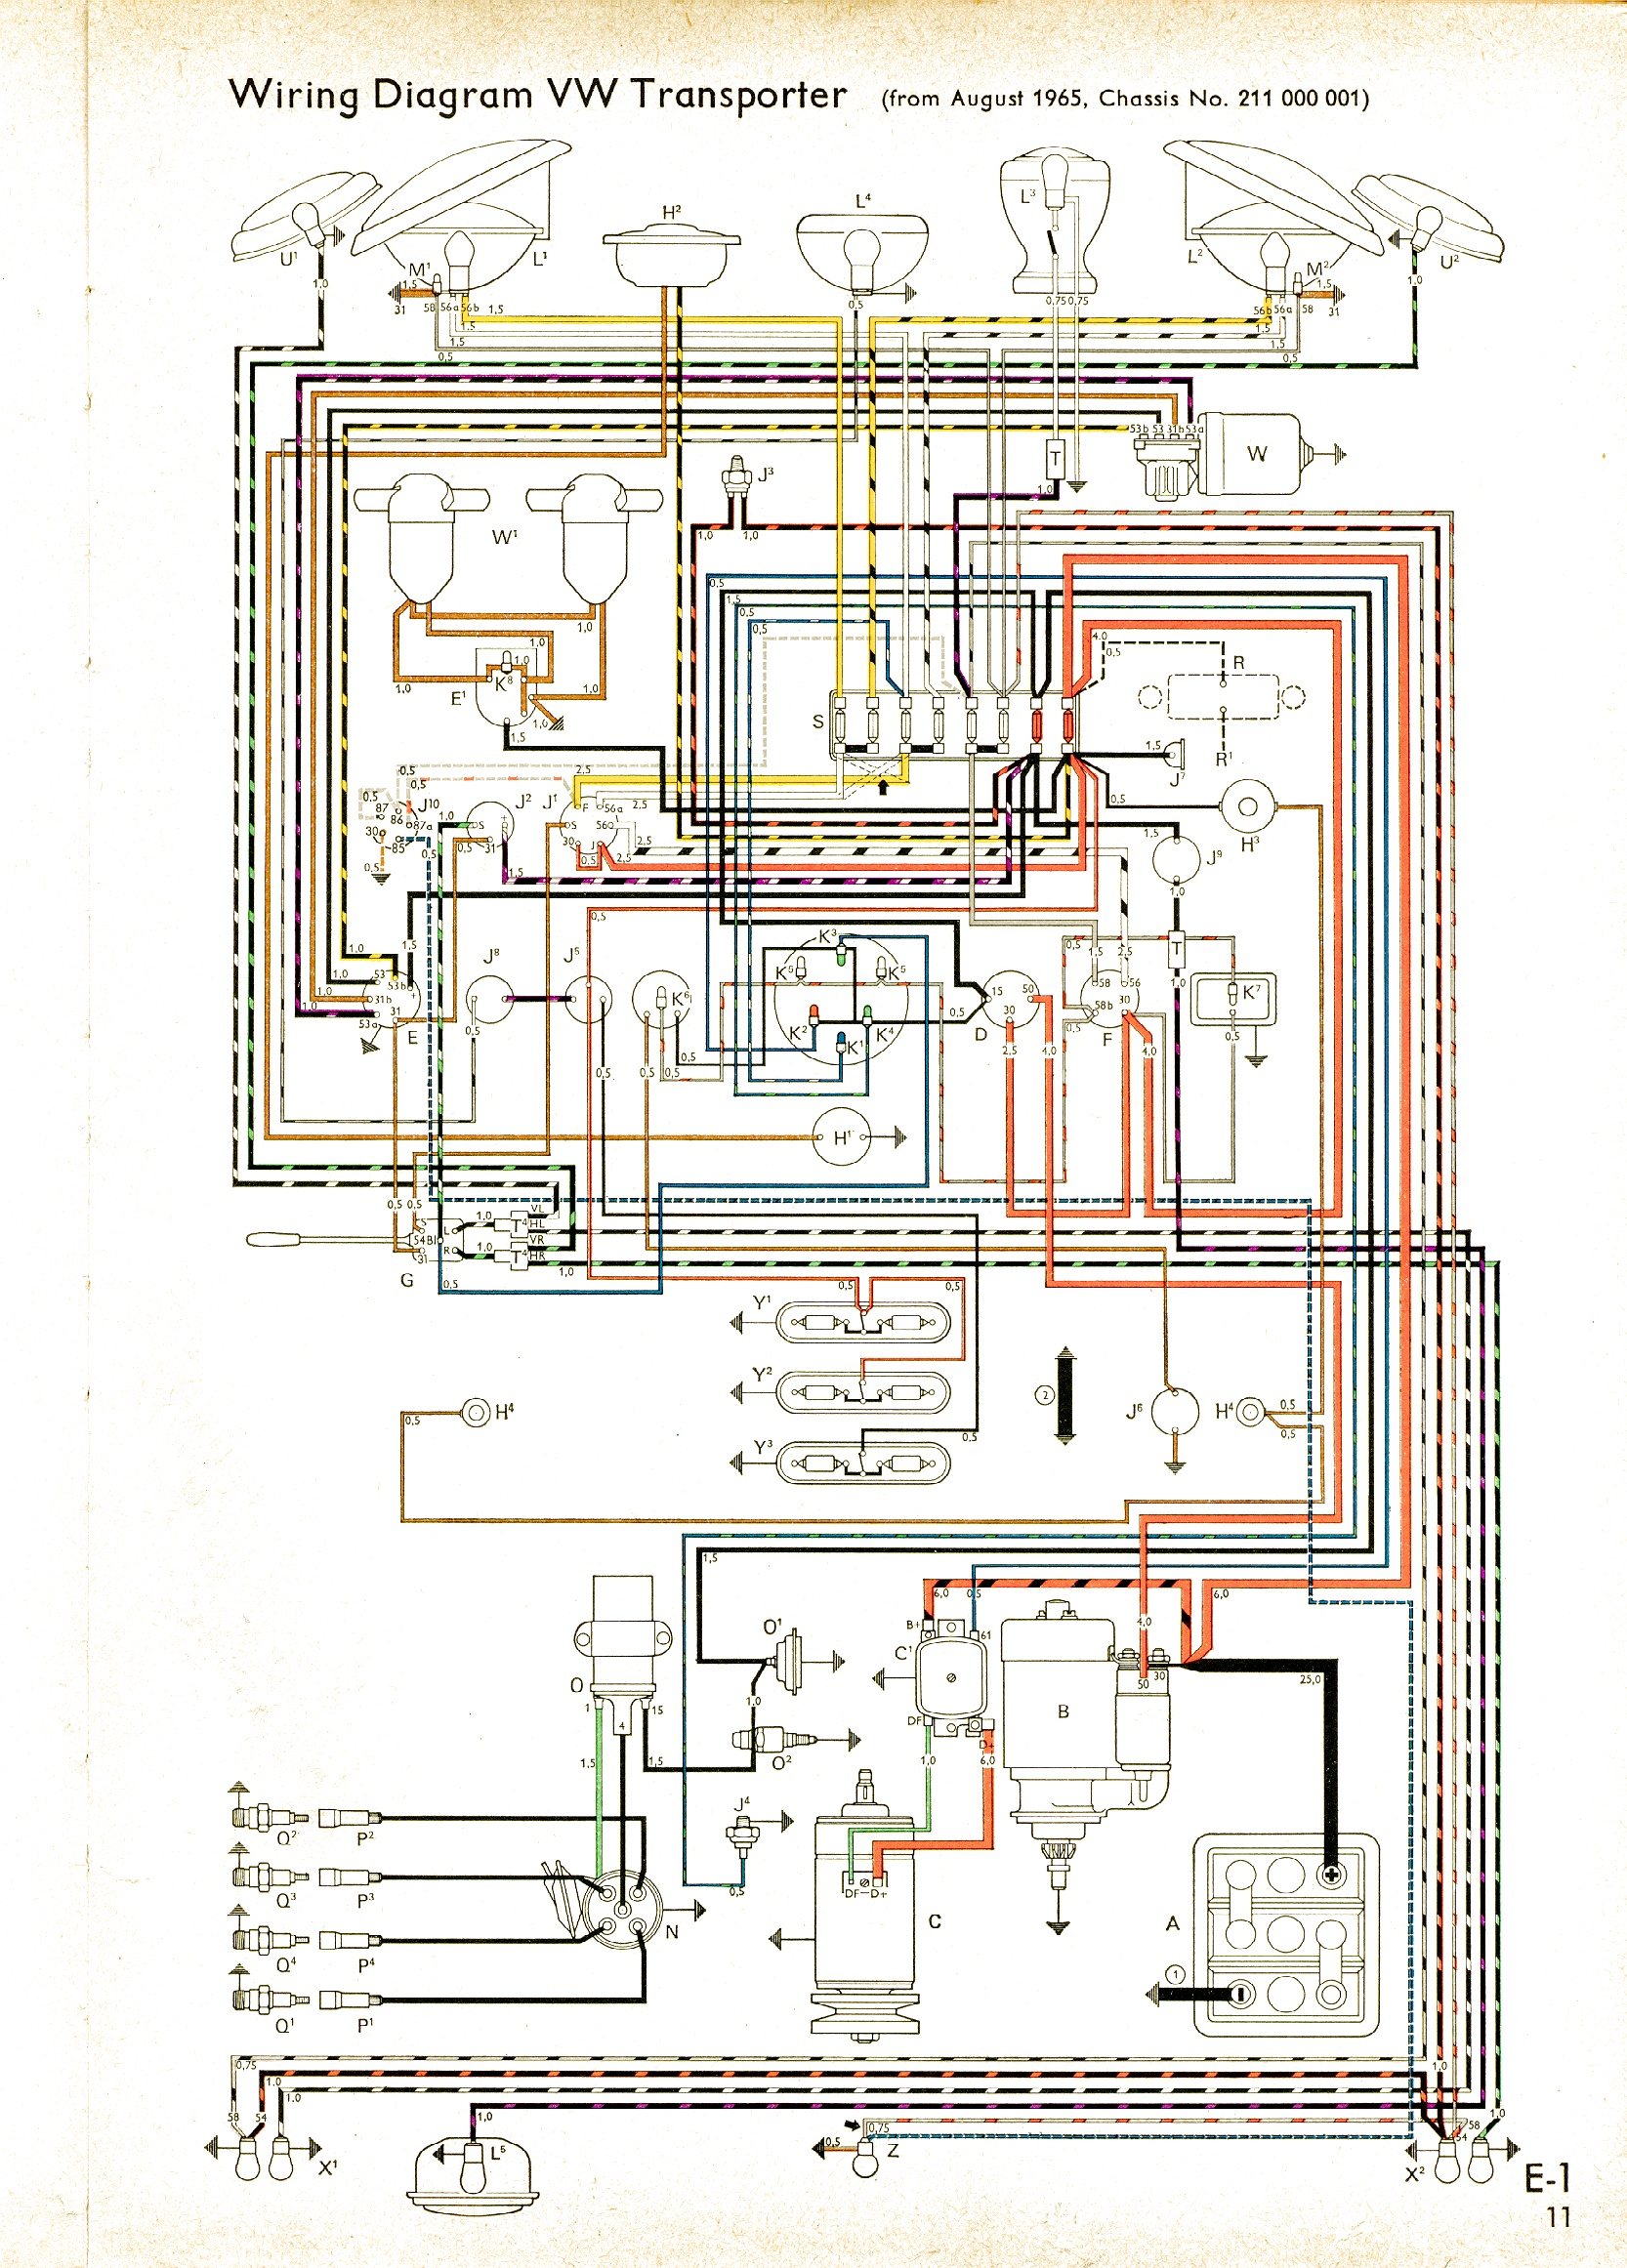 volkswagen bug wiring diagram wiring diagram and hernes volkswagen beetle type 1 wiring harness prelit christmas tree